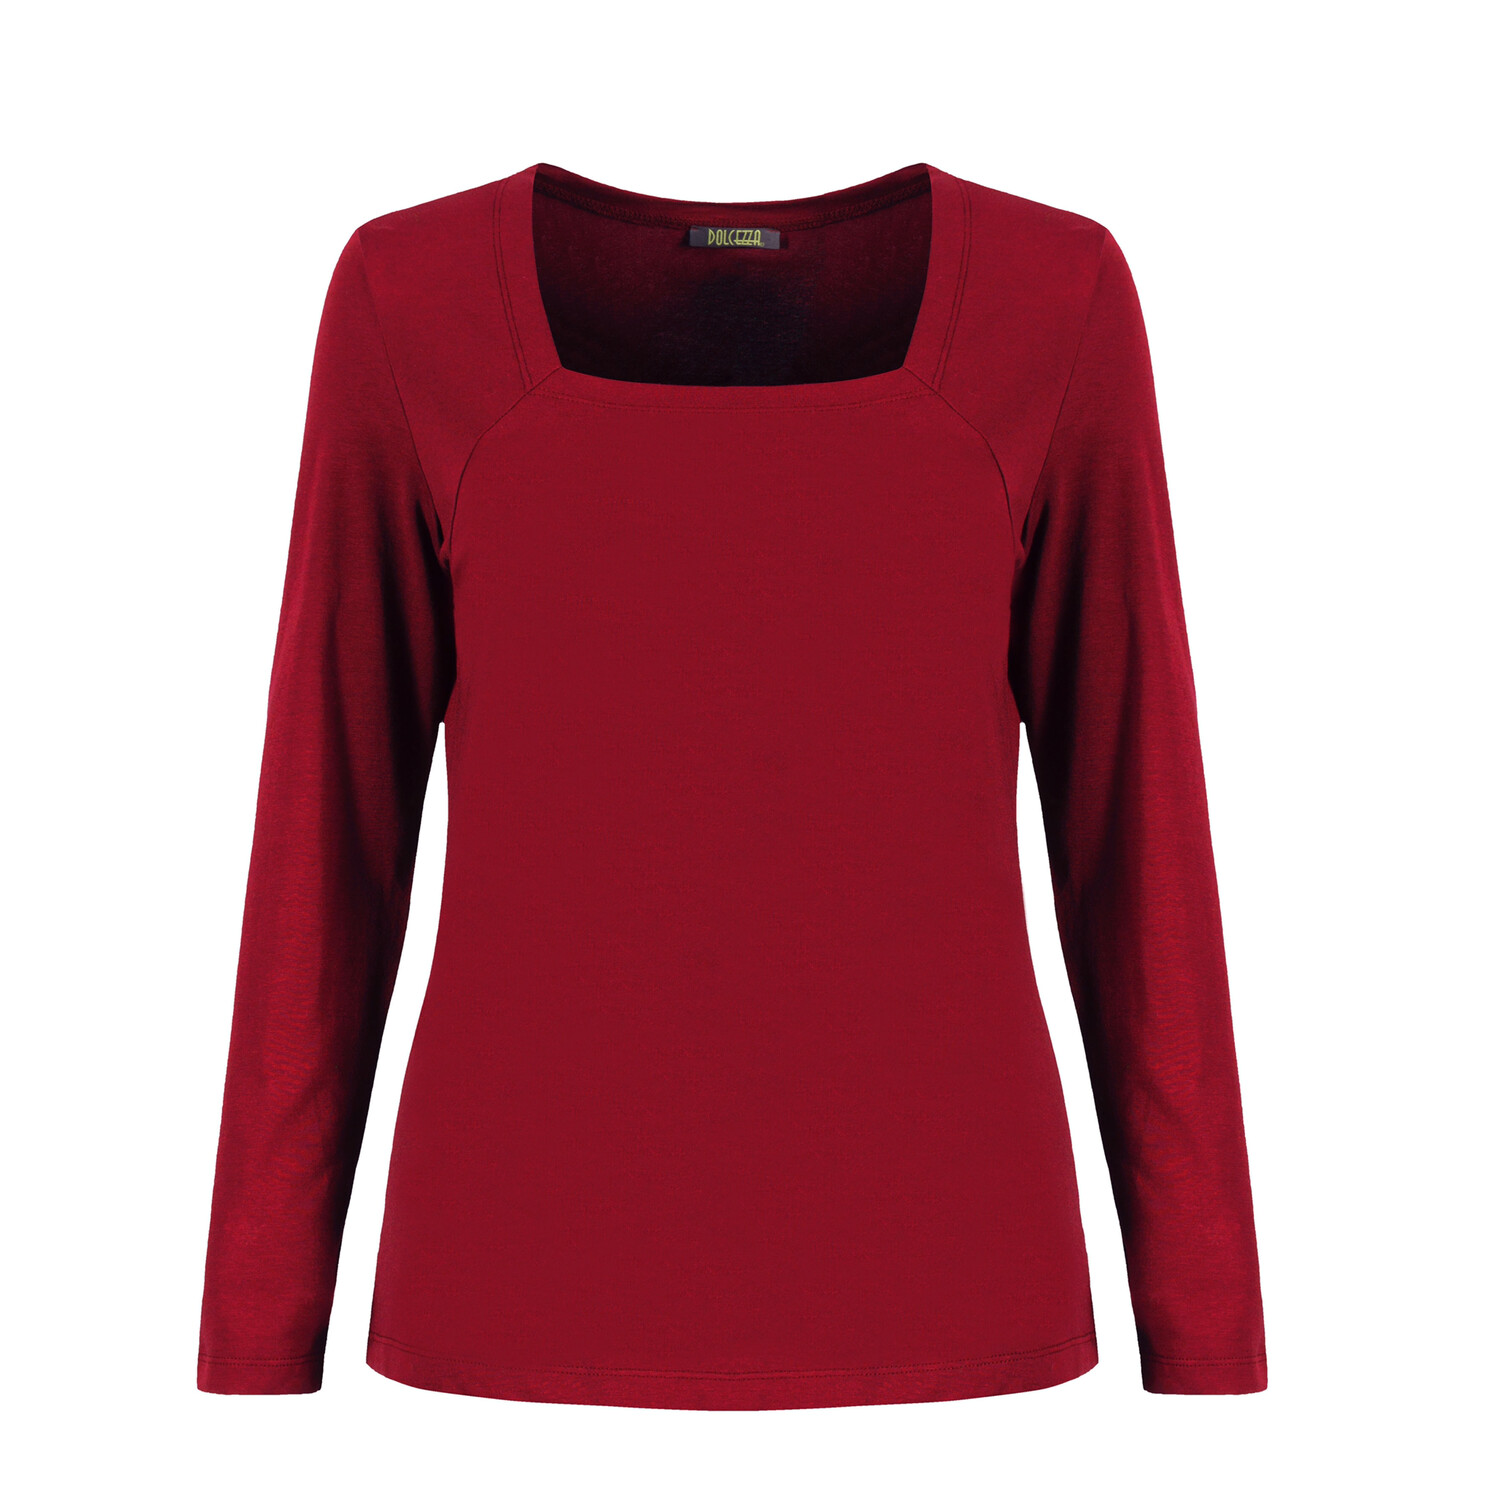 Red Cotton Stretch Long Sleeved Top